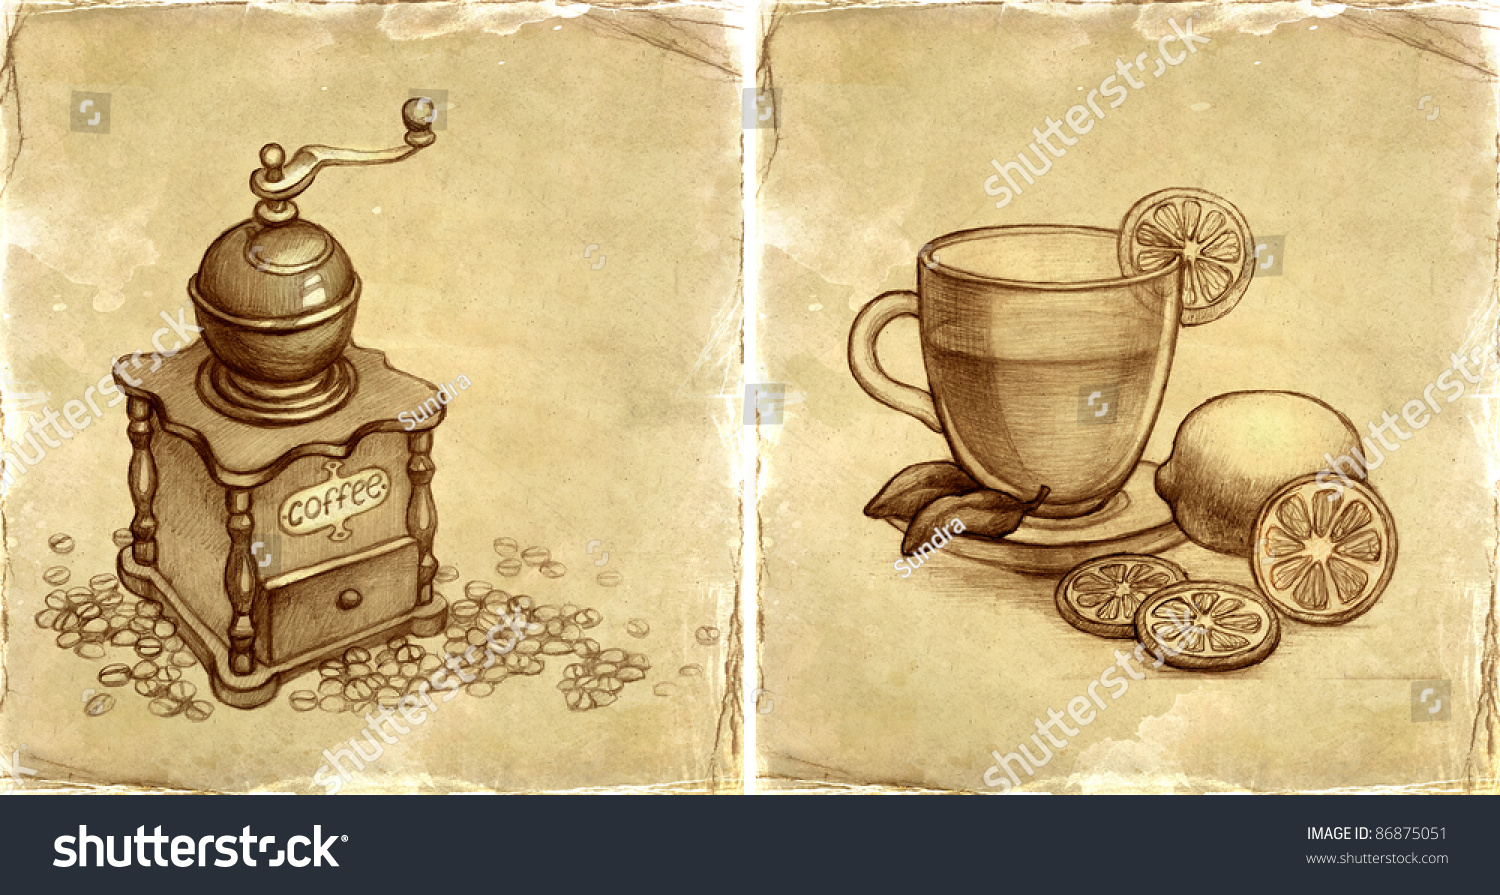 Coffee Grinder Drawing ~ Pencil drawing of glass cup tea with lemon and sketch